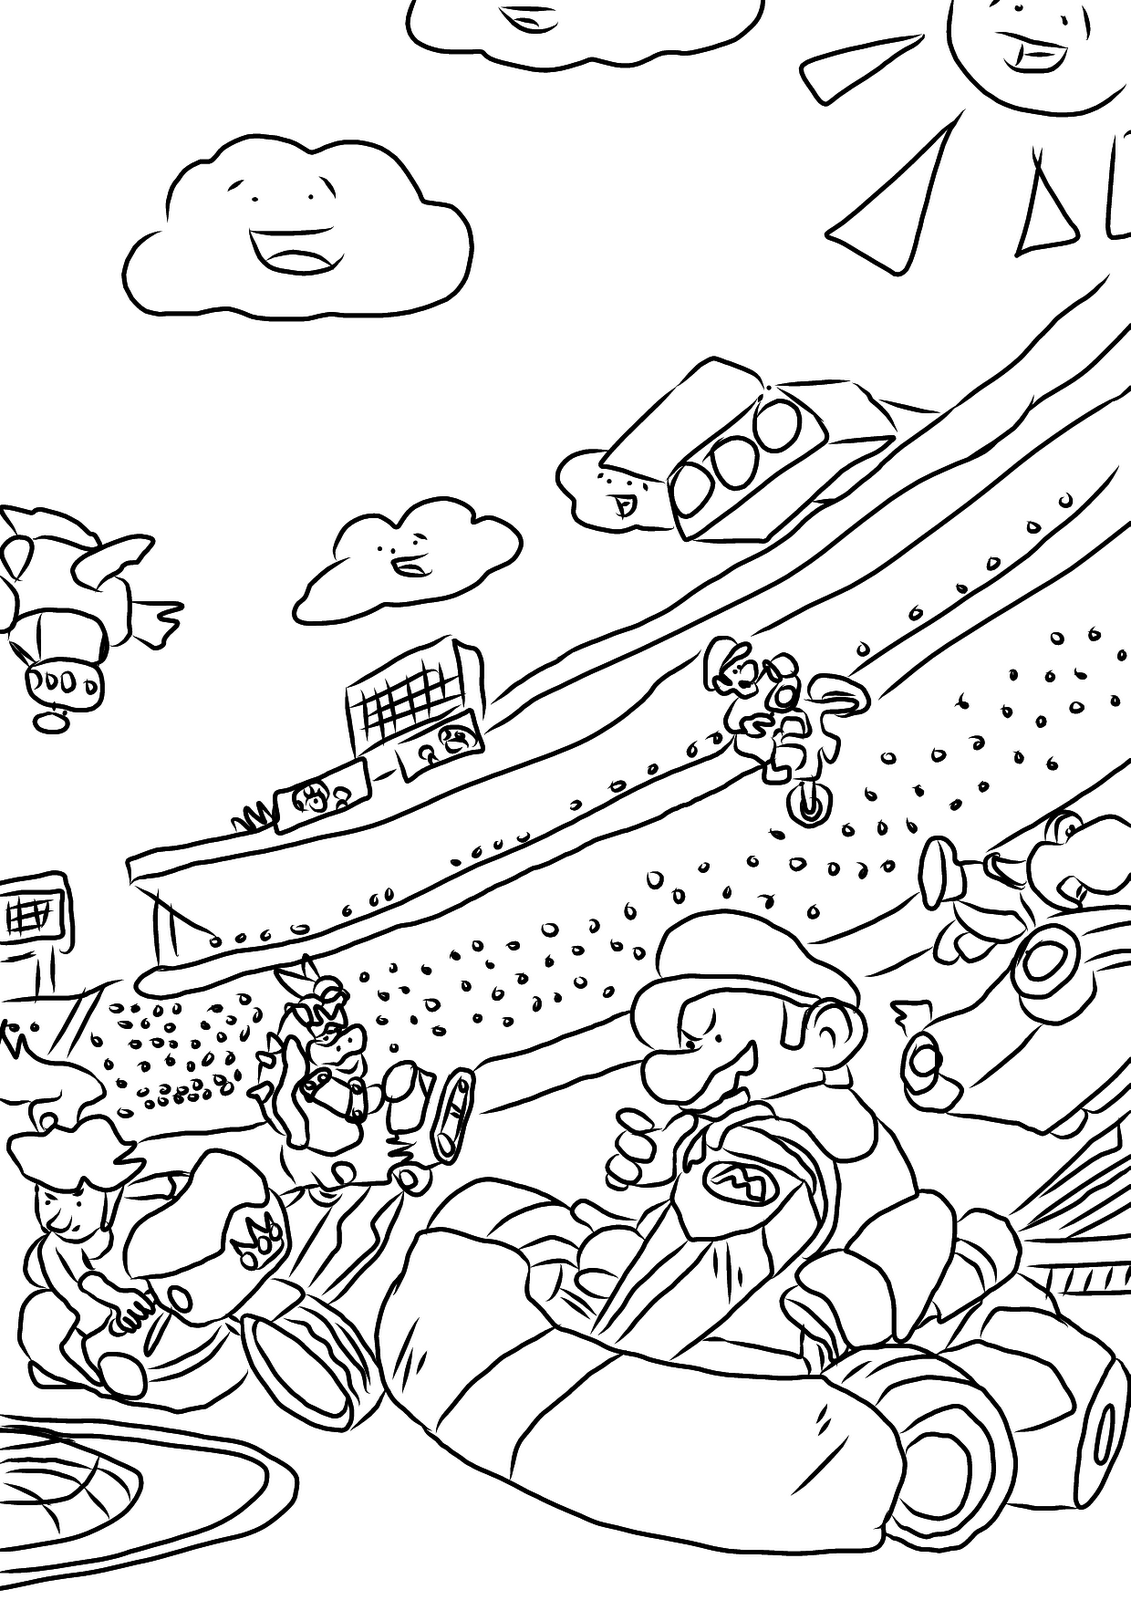 coloring pages mario kart - mario and luigi coloring pages